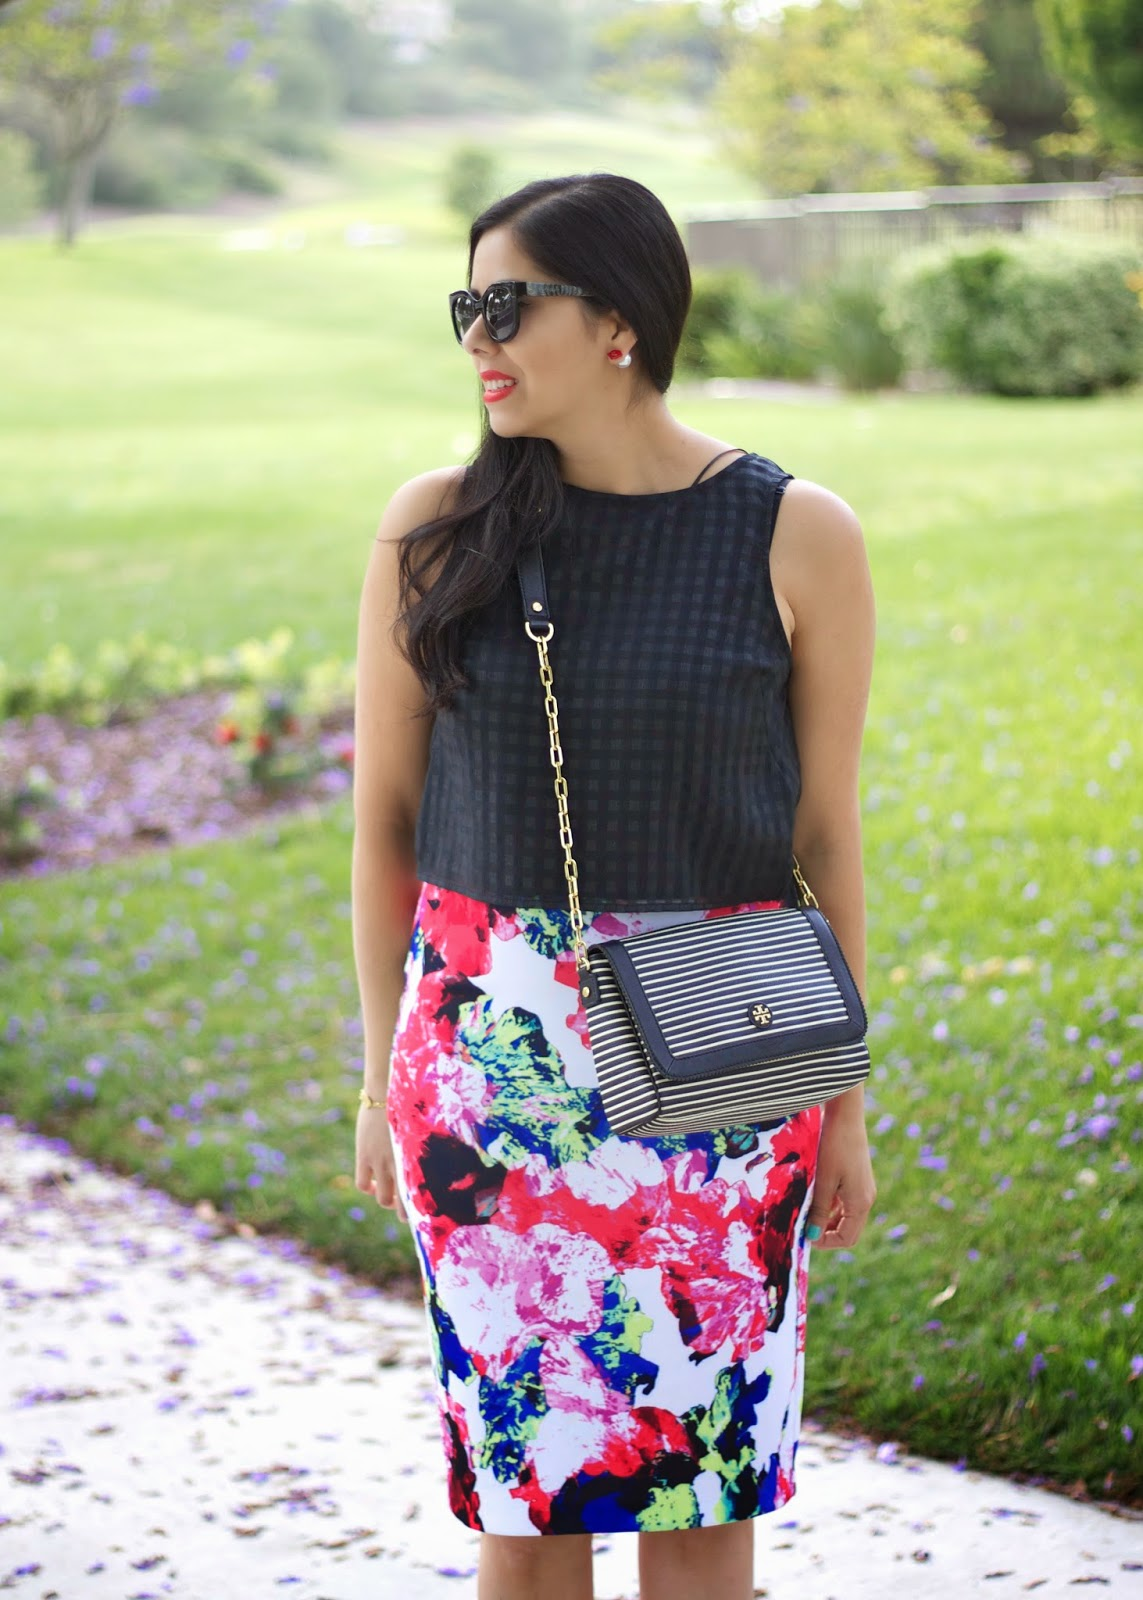 Kohls Outfit blogger, kohls blogger, kohls fashion blogger, outfit by kohls, milly and kohls collaboration skirt